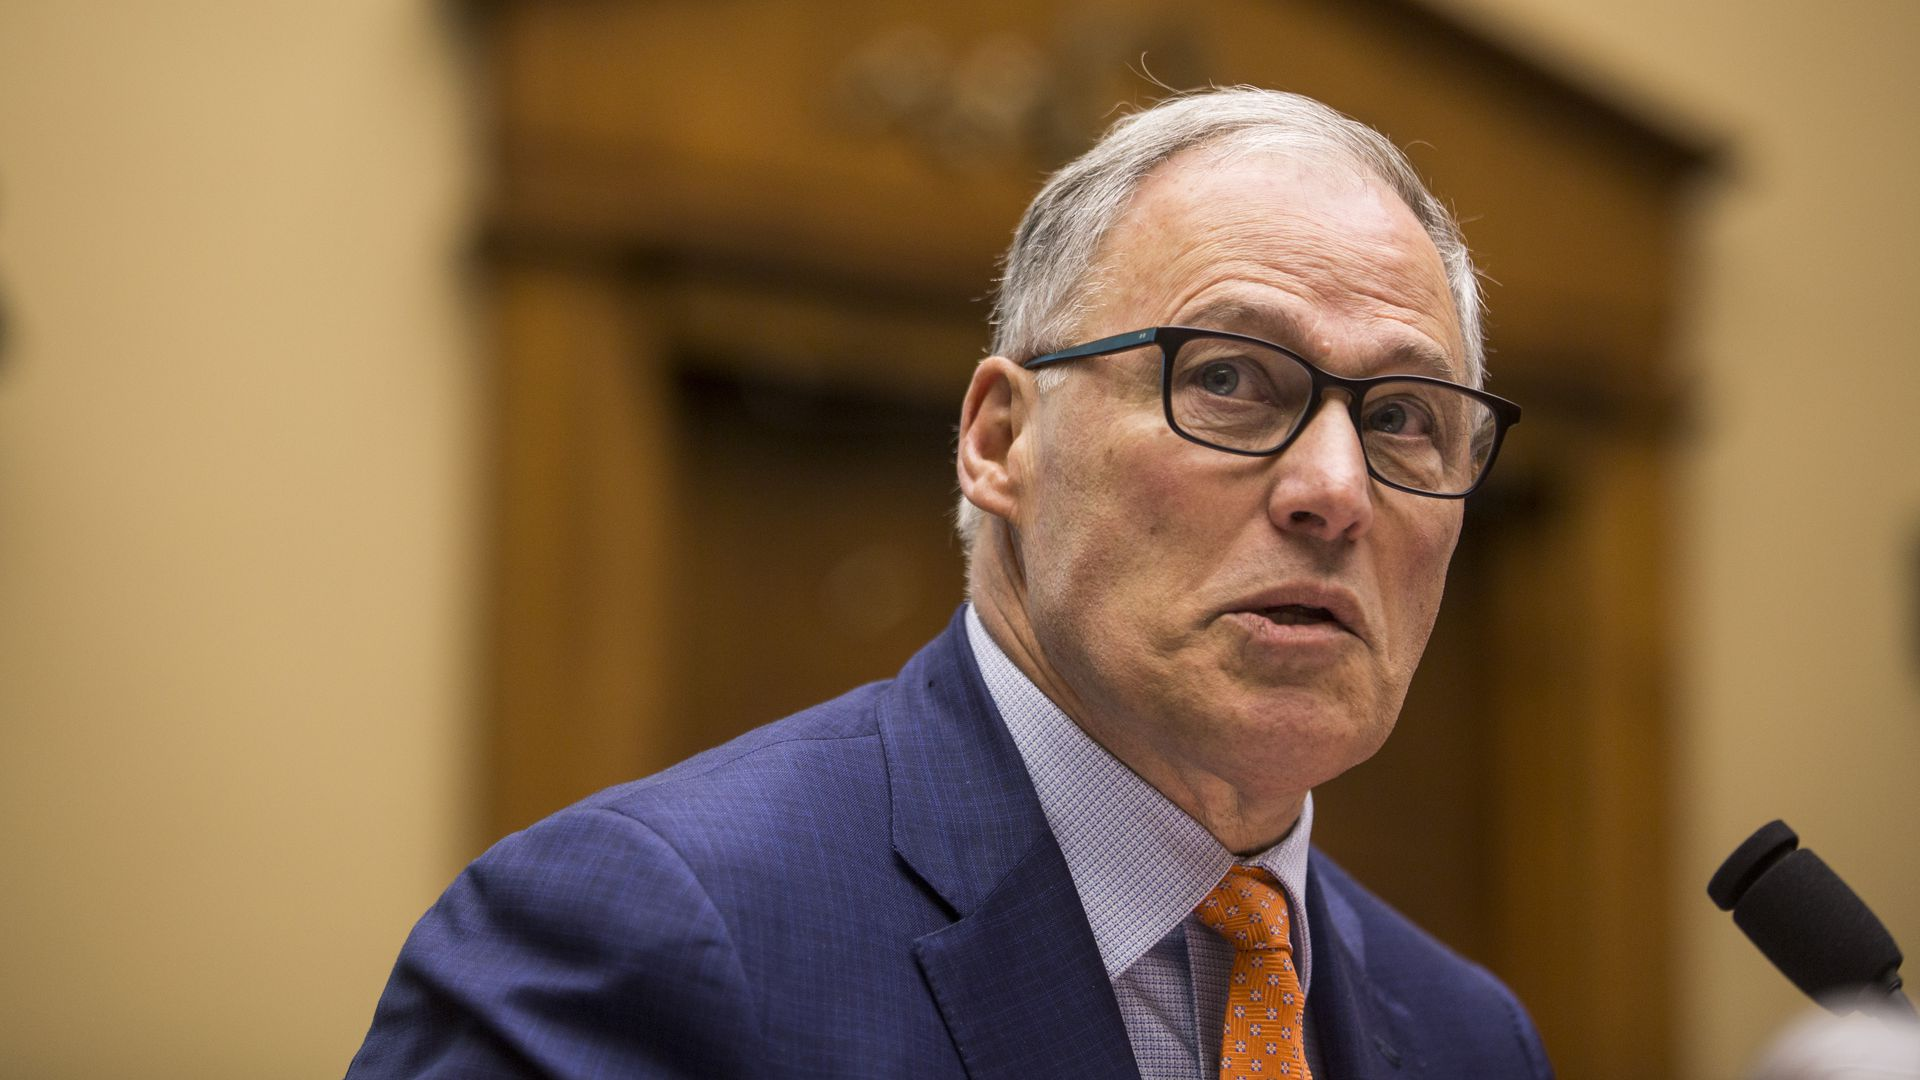 Jay Inslee's plan to wean the U.S. off its reliance on coal, oil and natural gas